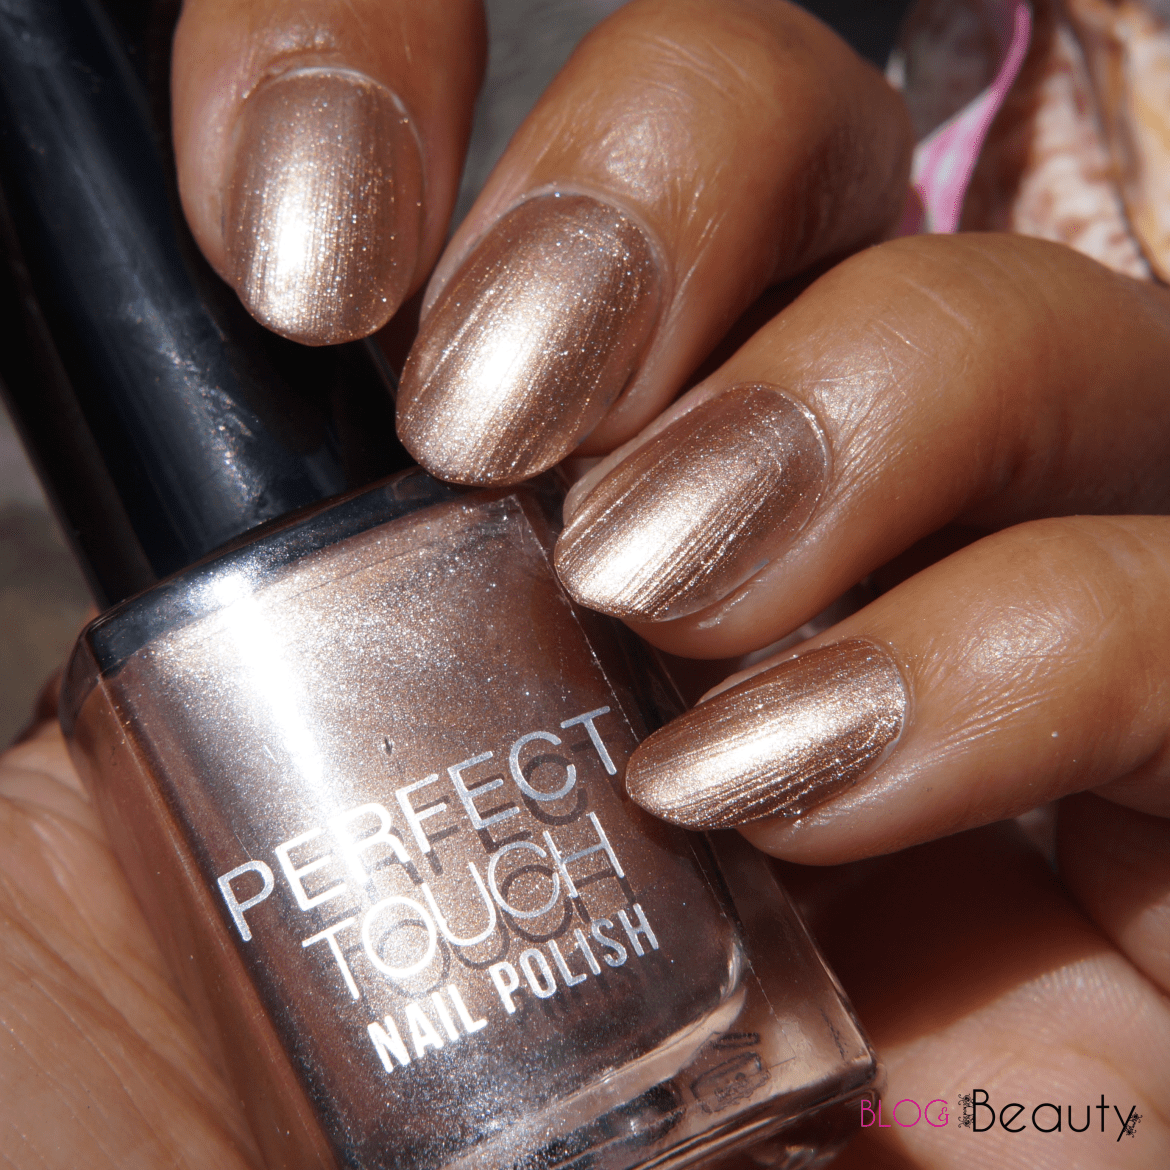 Big Bazar Perfect Touch Nagellak